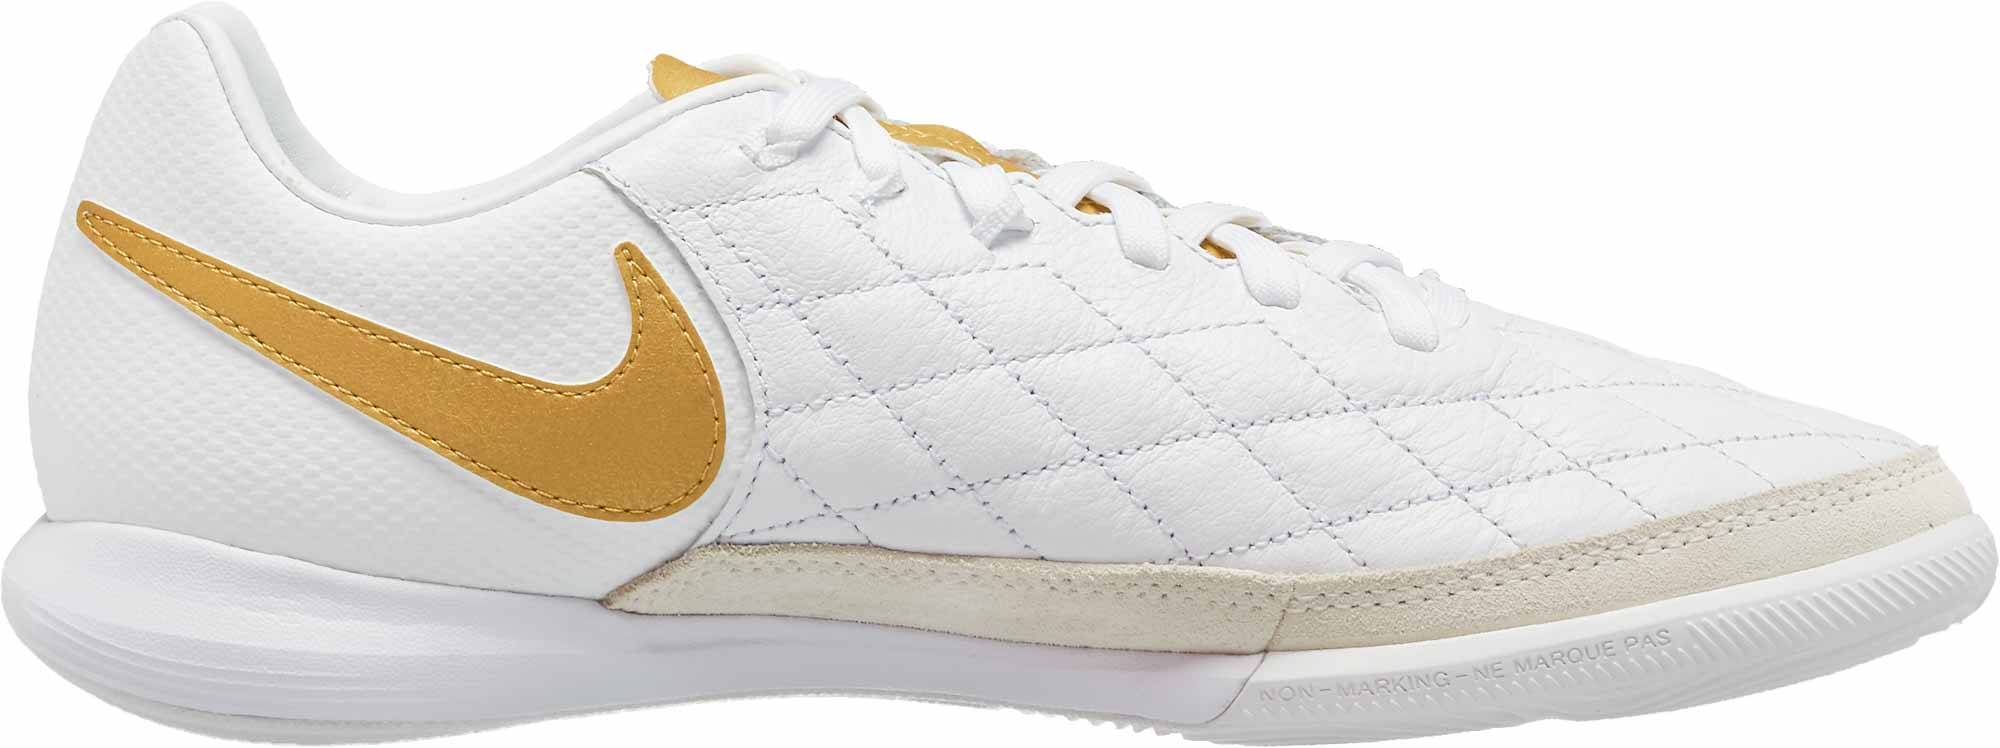 best service 14629 4d3f1 ... reduced nike lunar legendx 7 pro ic 10r white metallic gold white 0c1ec  5a637